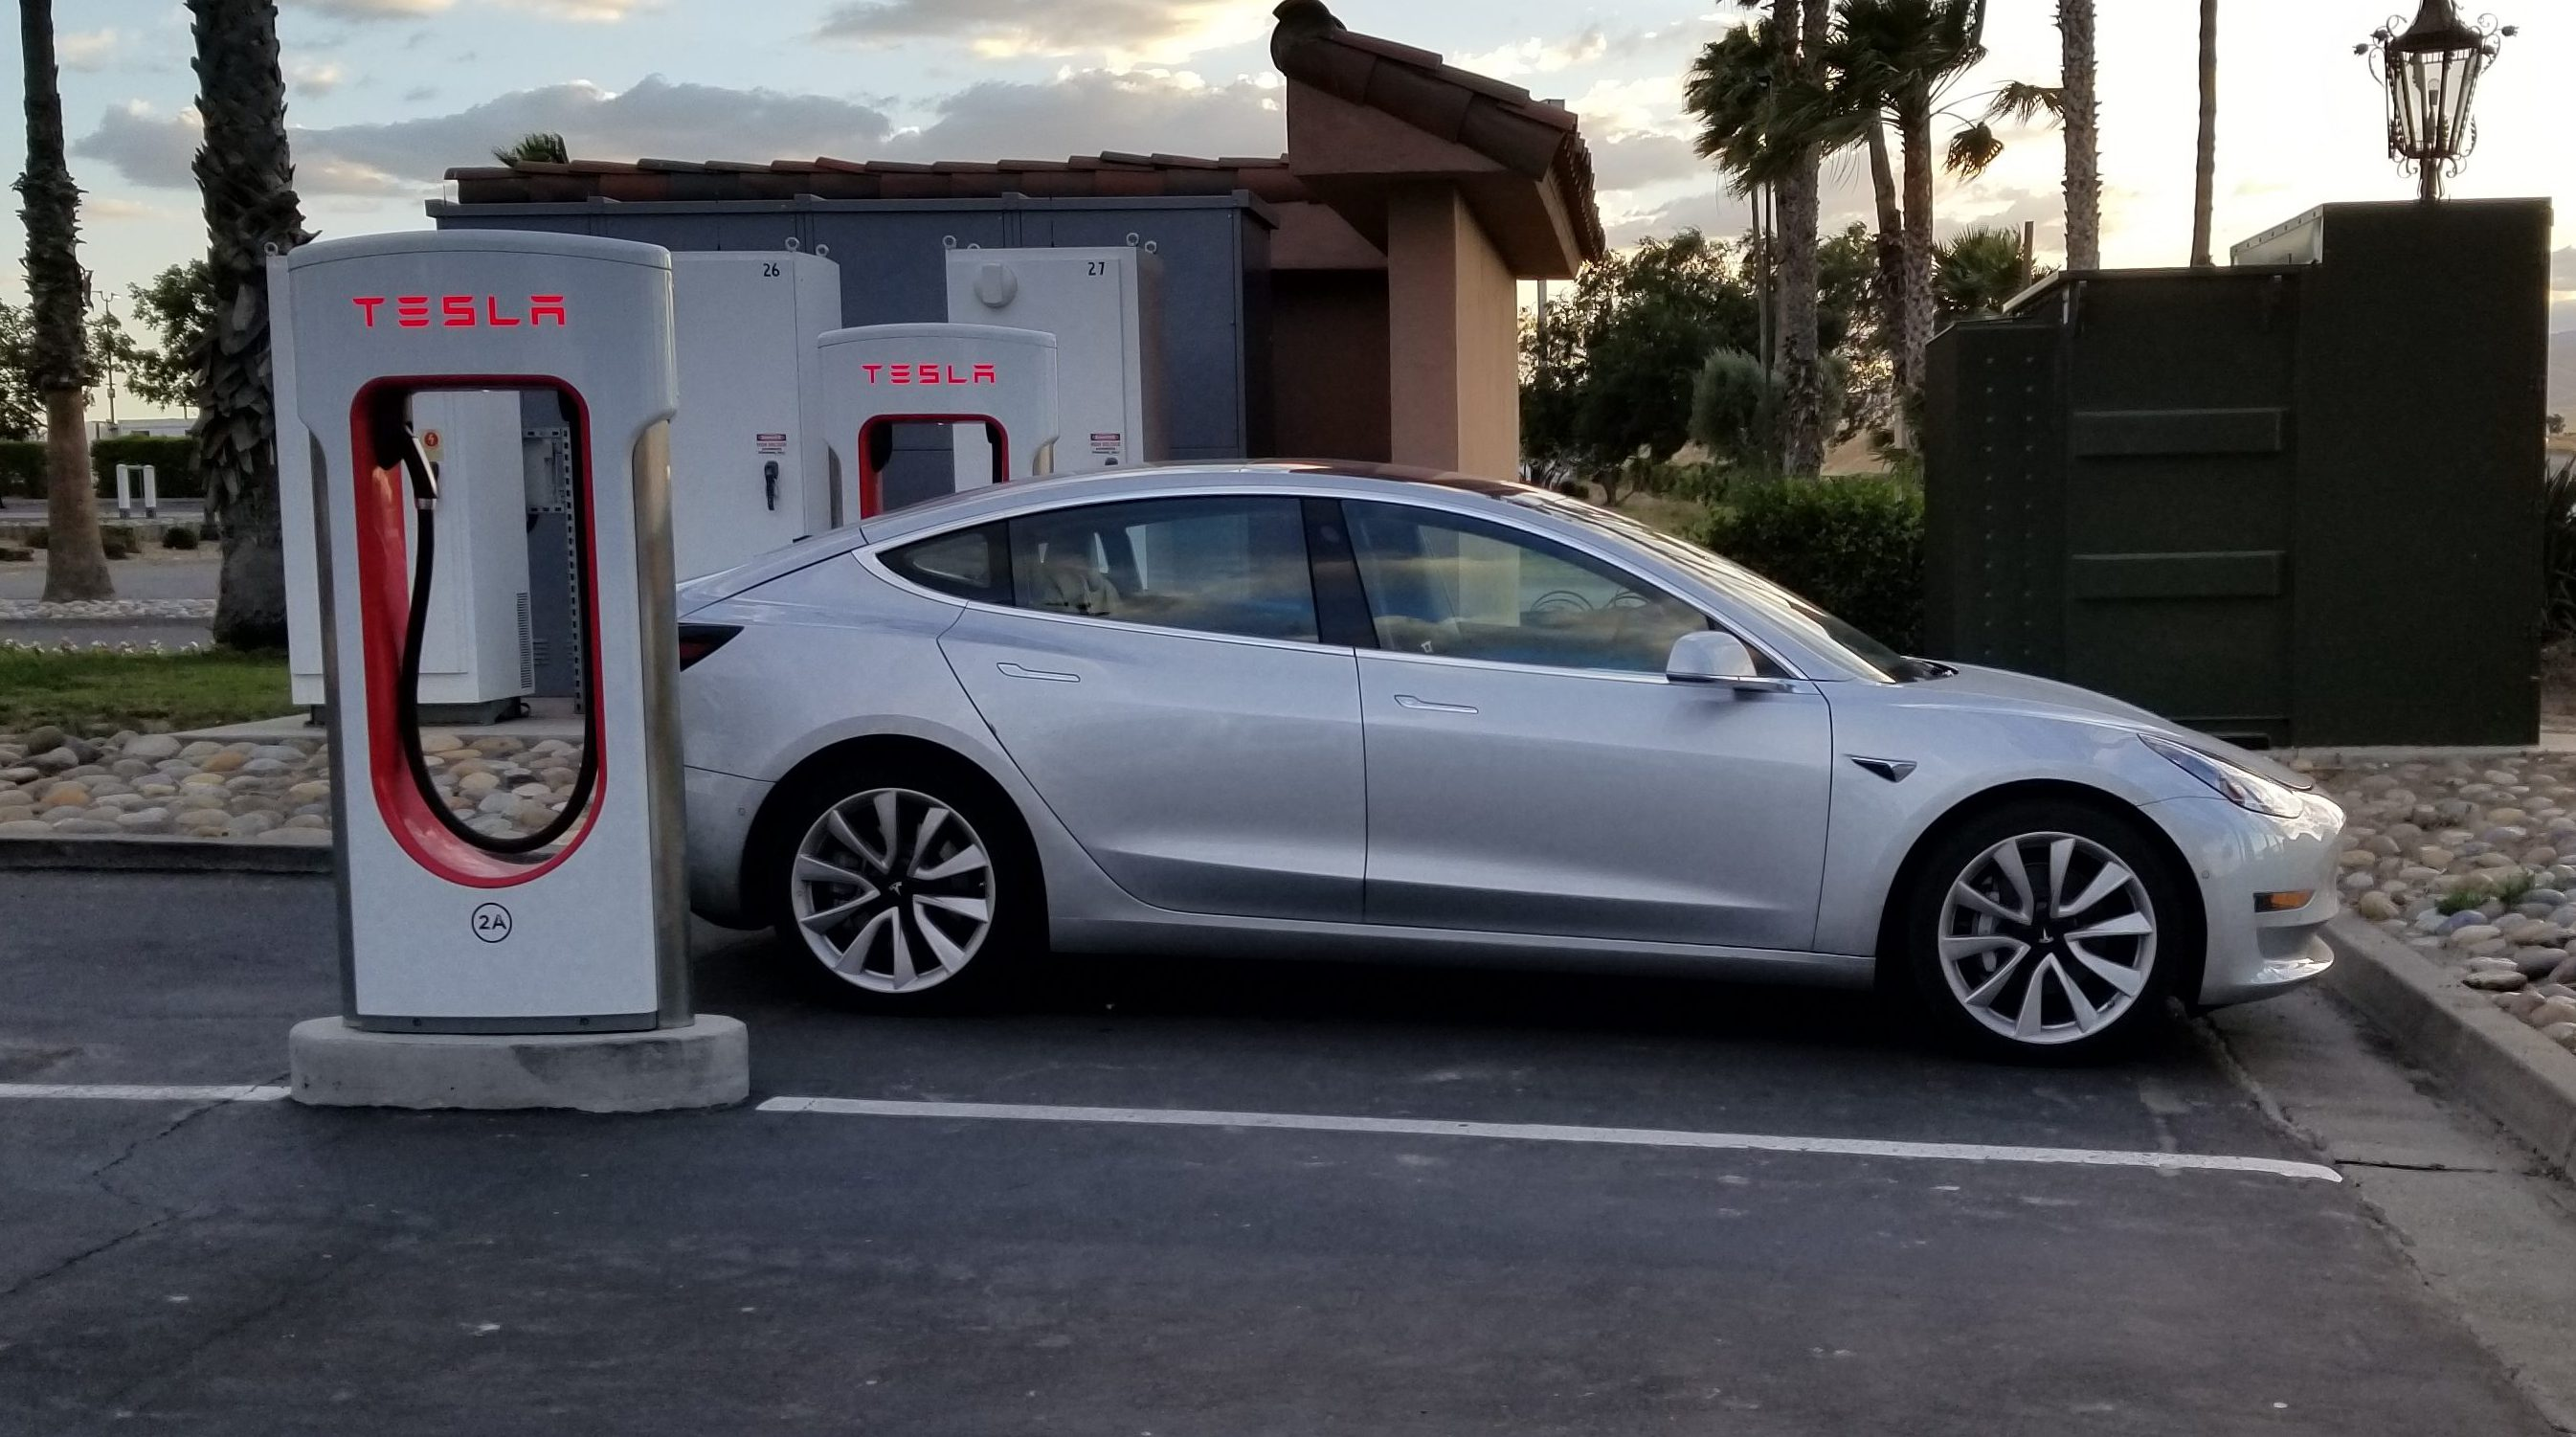 How much is a tesla home charger